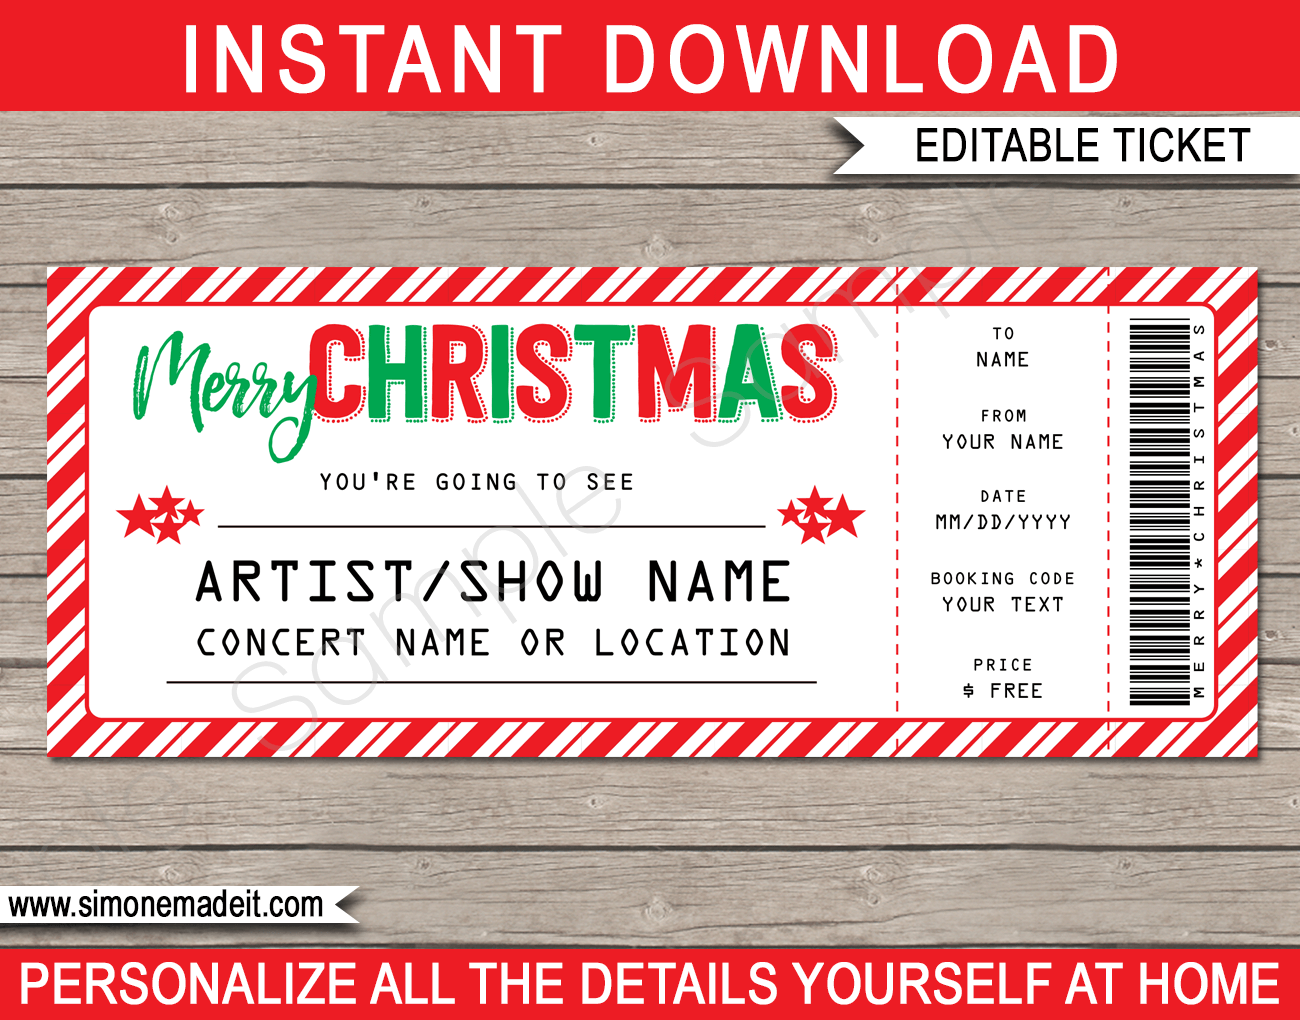 Concert Ticket Template Free Download Inspiration Christmas Gift Concert Ticket Template  Red Green & White .